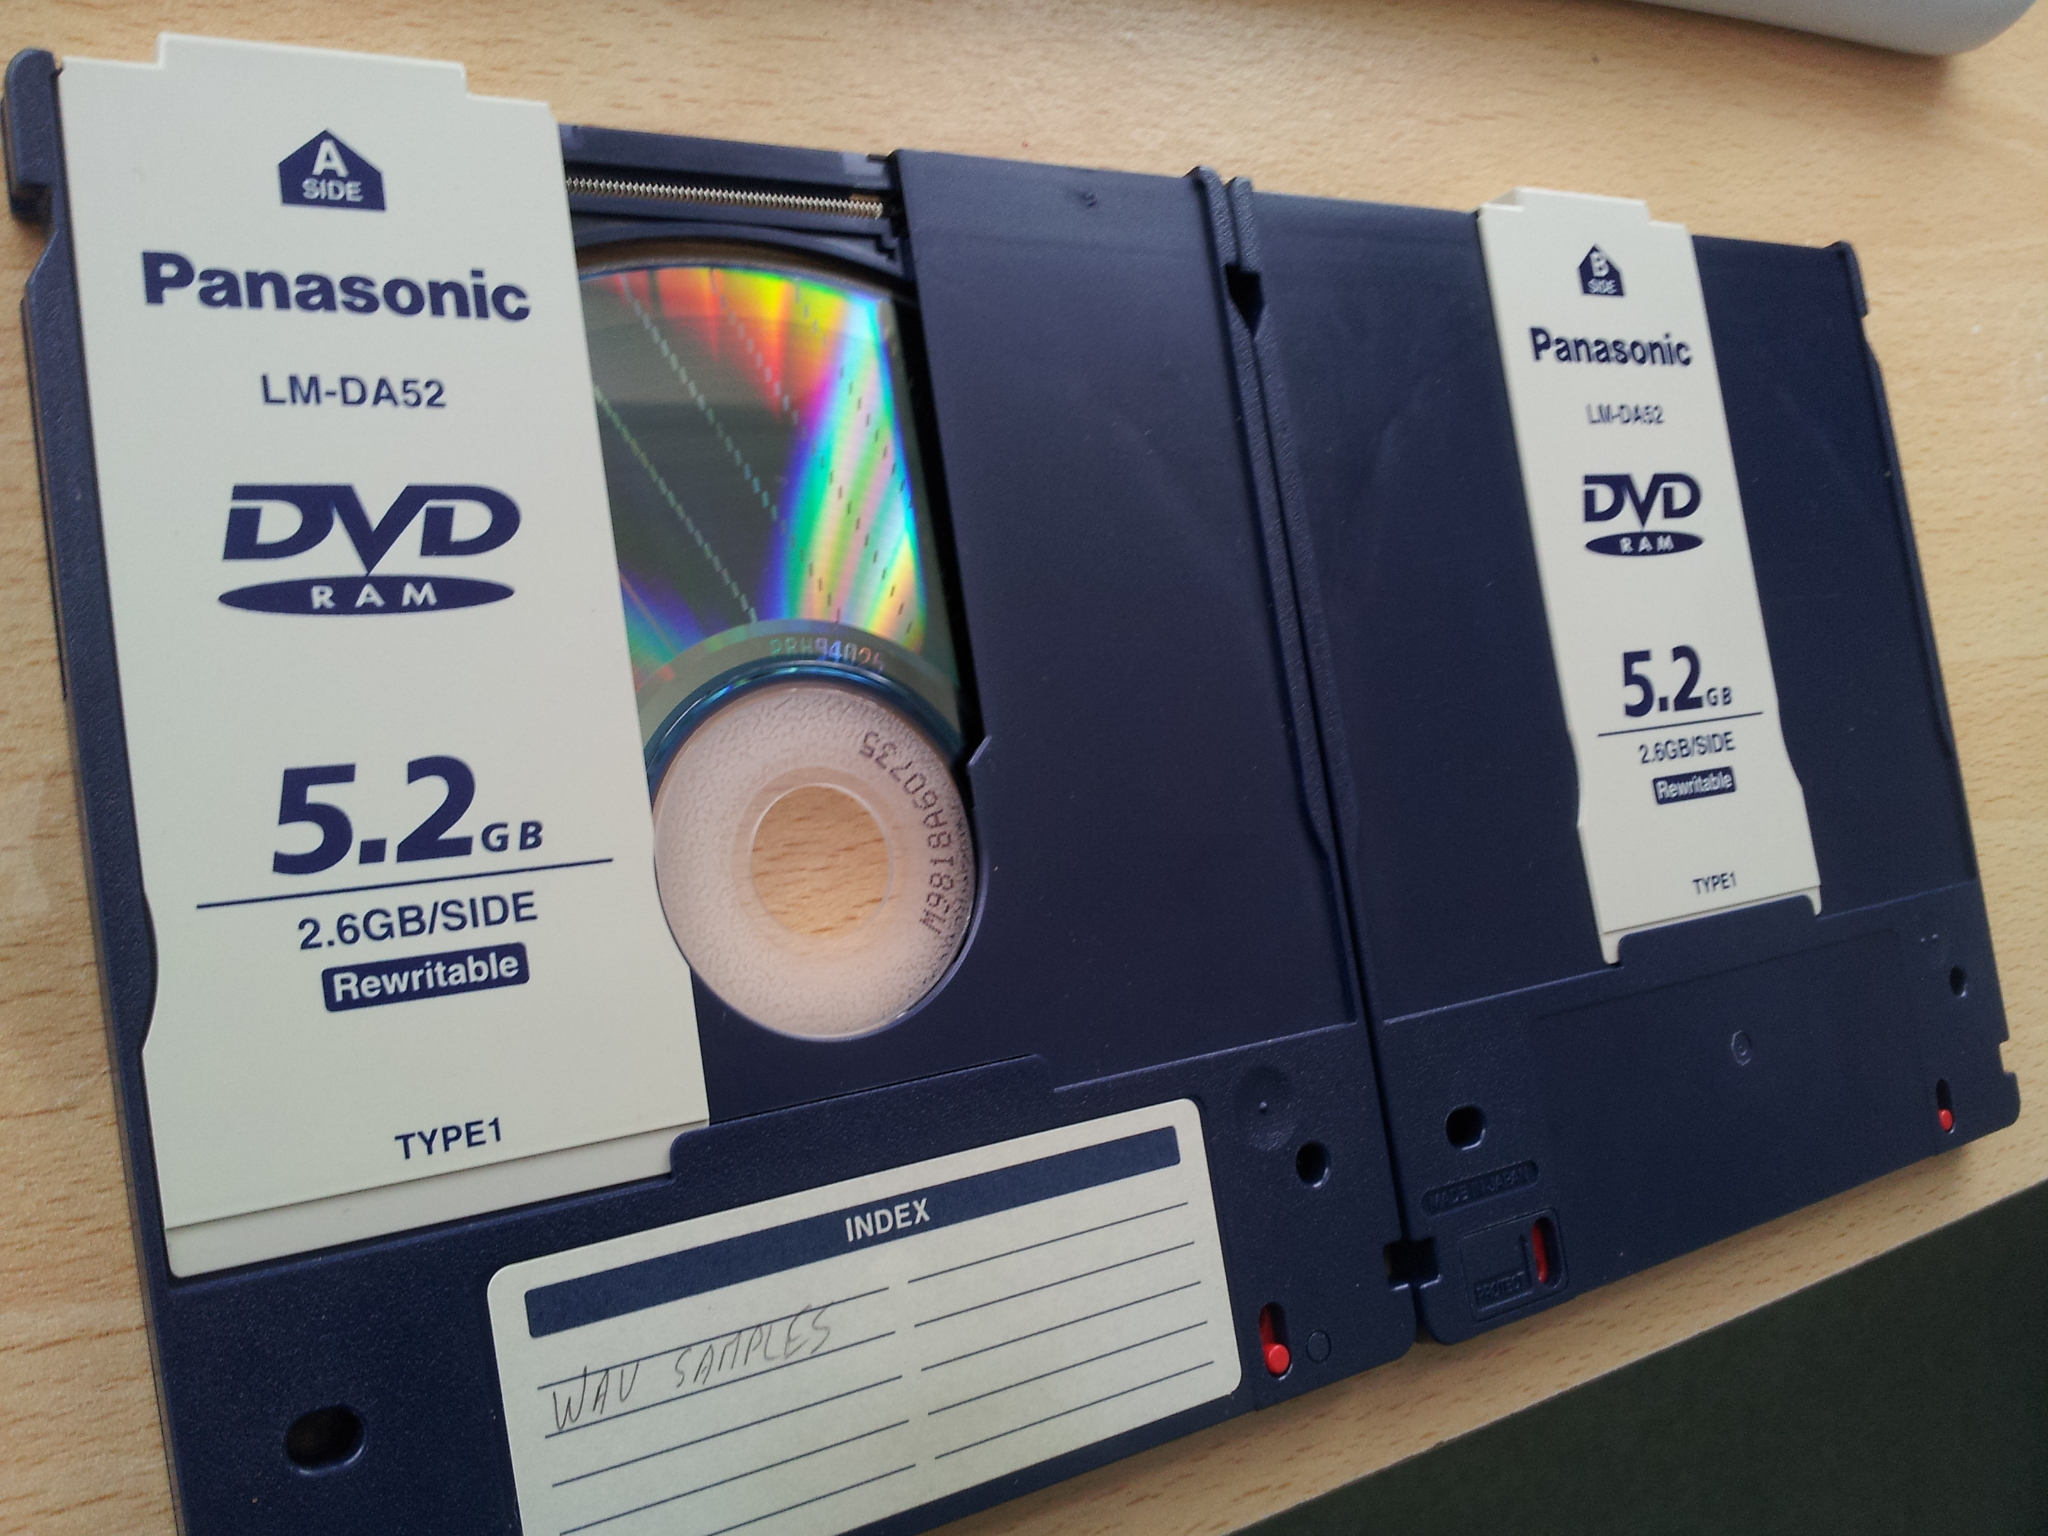 Panasonic DVD-RAM cartridge that requires conversion and files copied to a new hard drive